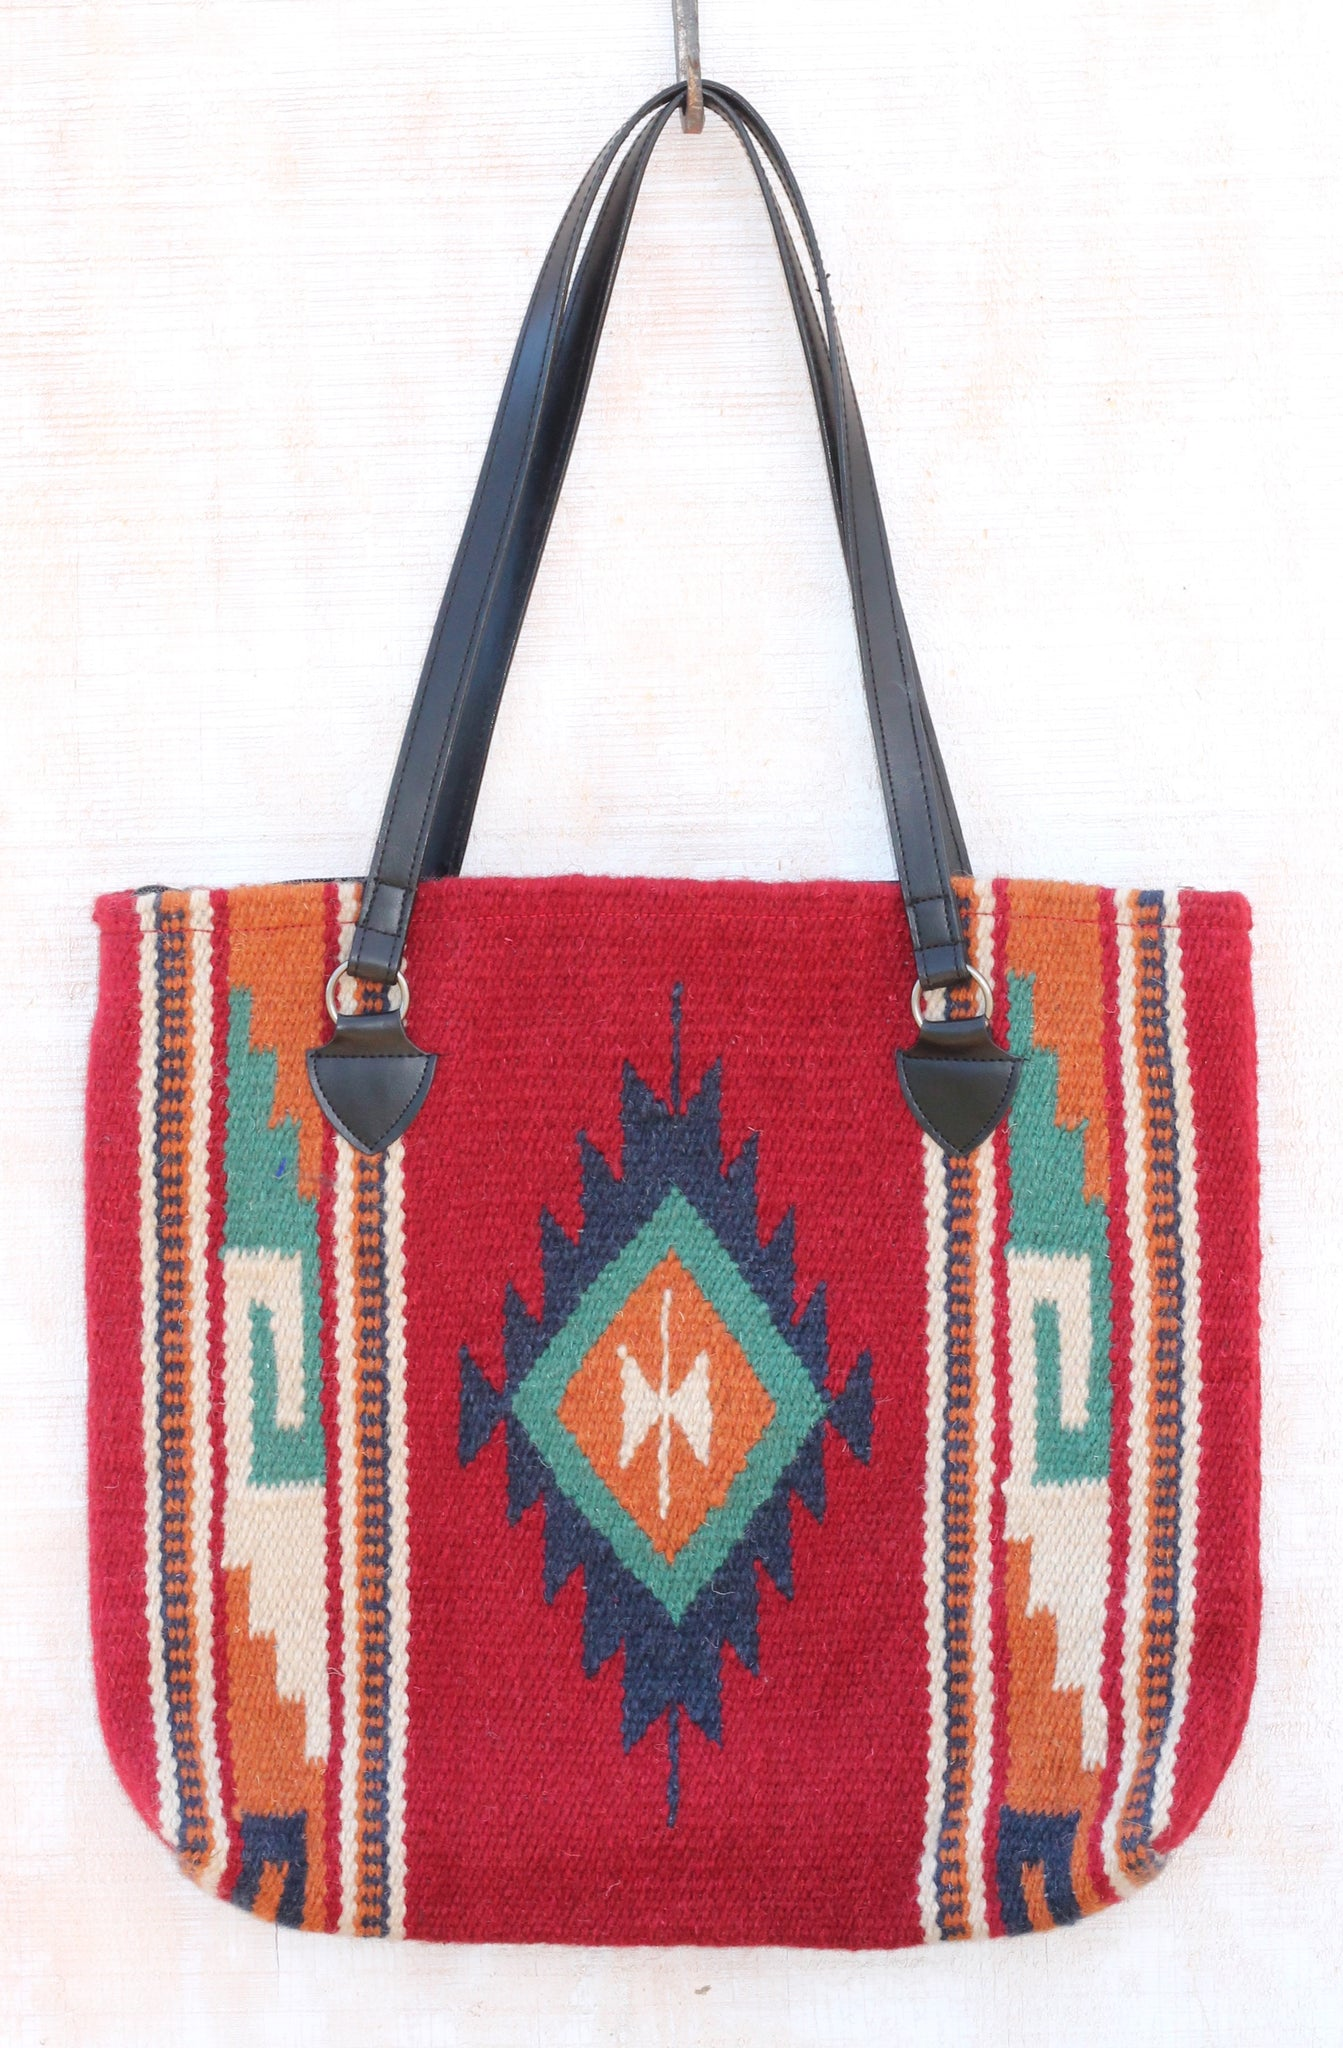 San Marcos Southwest Handbag ~ Handwoven 100% Wool. Vibrant colors: Red, Turquoise, Orange, White and Navy are the perfect compliment to any wardrobe.